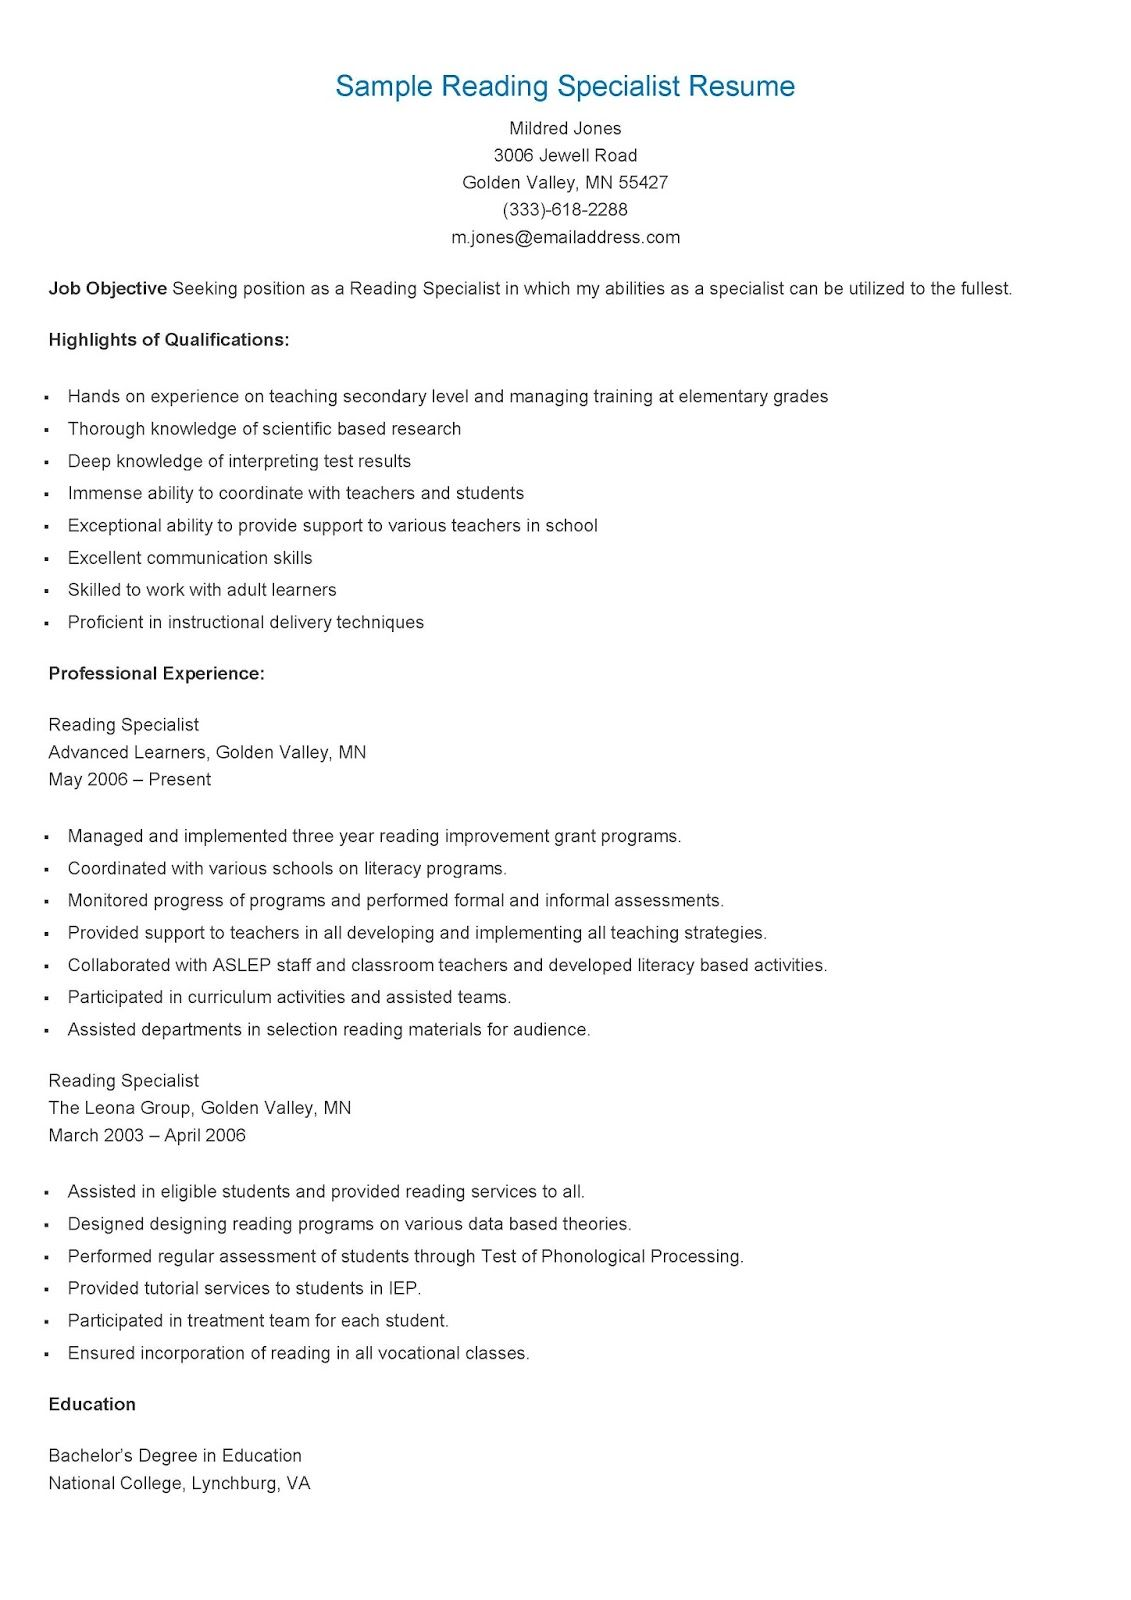 Sample Reading Specialist Resume | resame | Pinterest | Reading ...